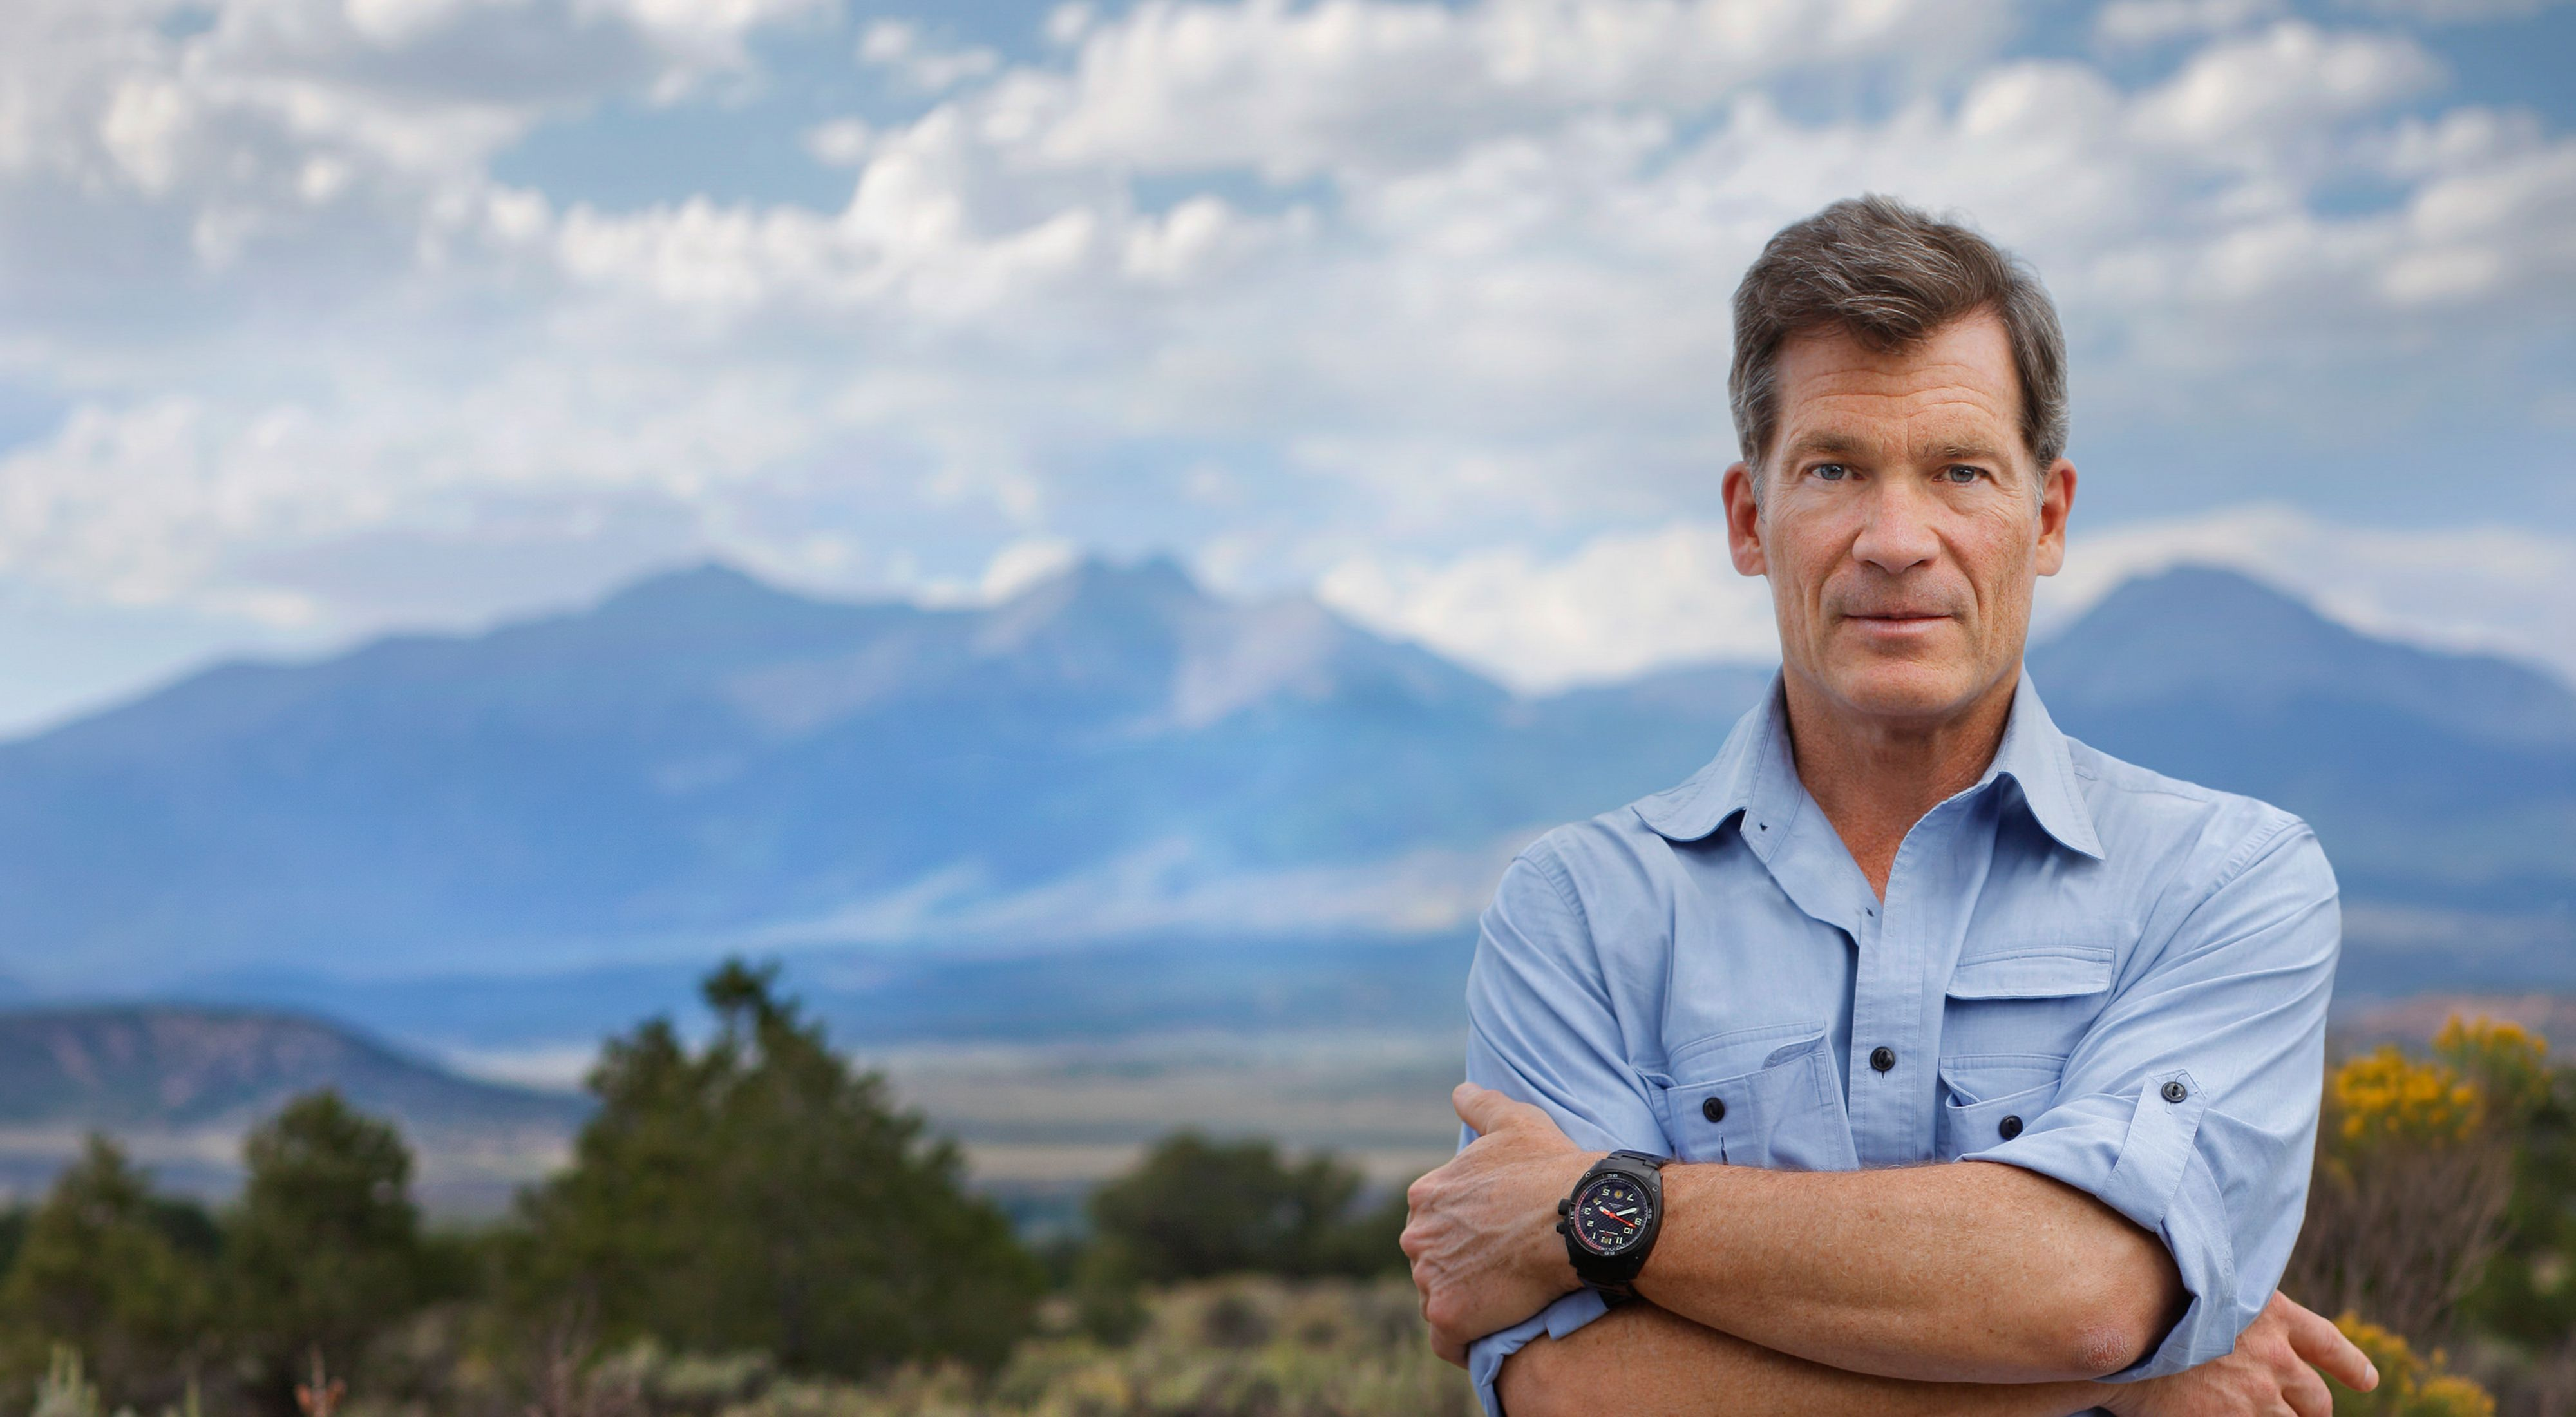 Man in light blue shirt stands with arms folded in front of mountain range.